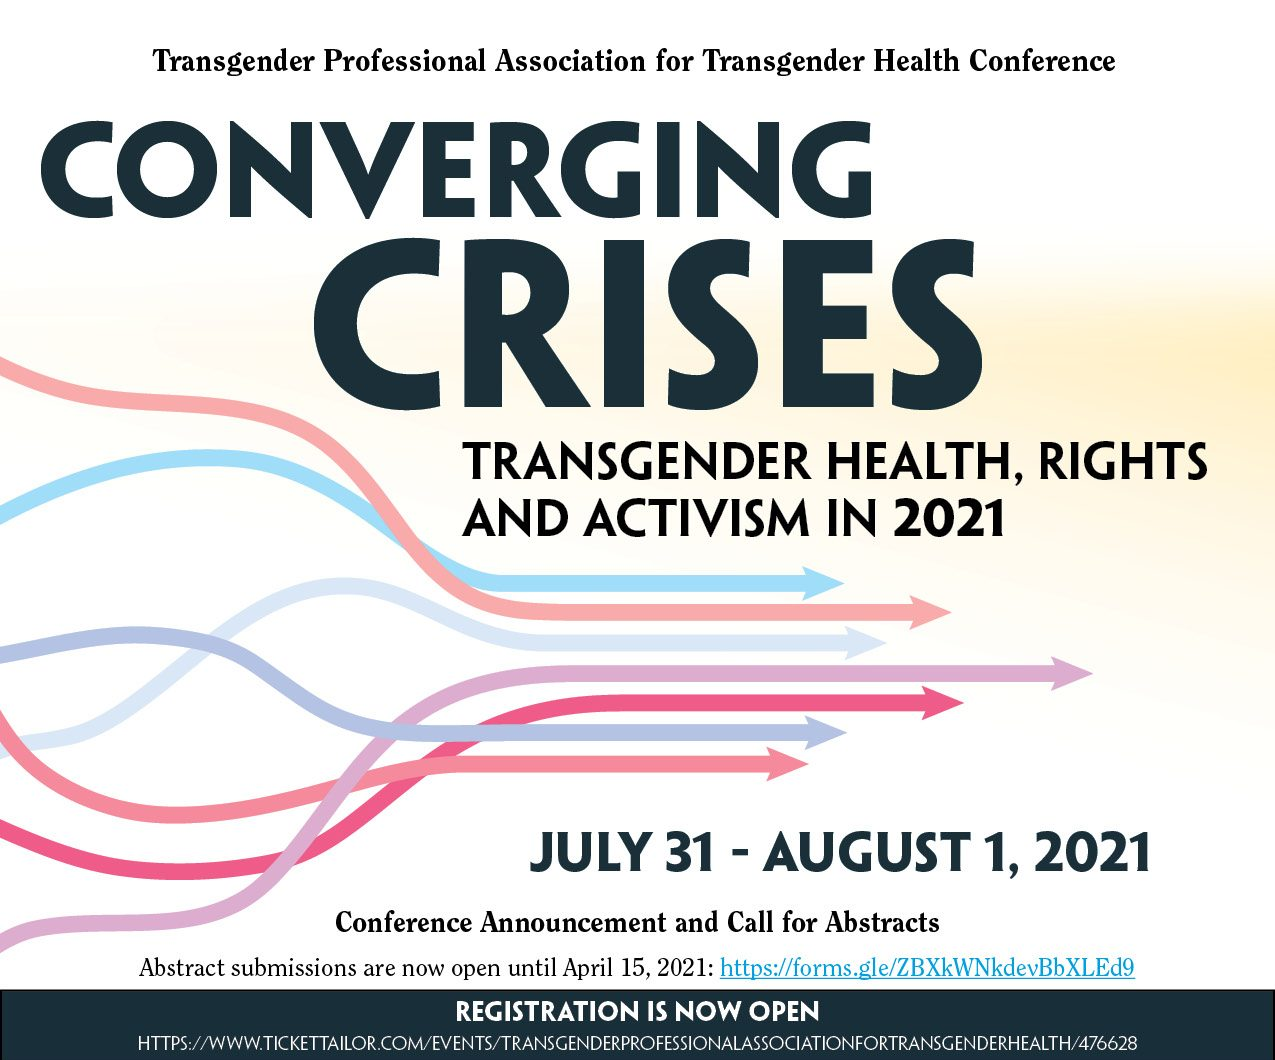 Inaugural TPATH Conference | Converging Crises: Transgender Health and Activism in 2021